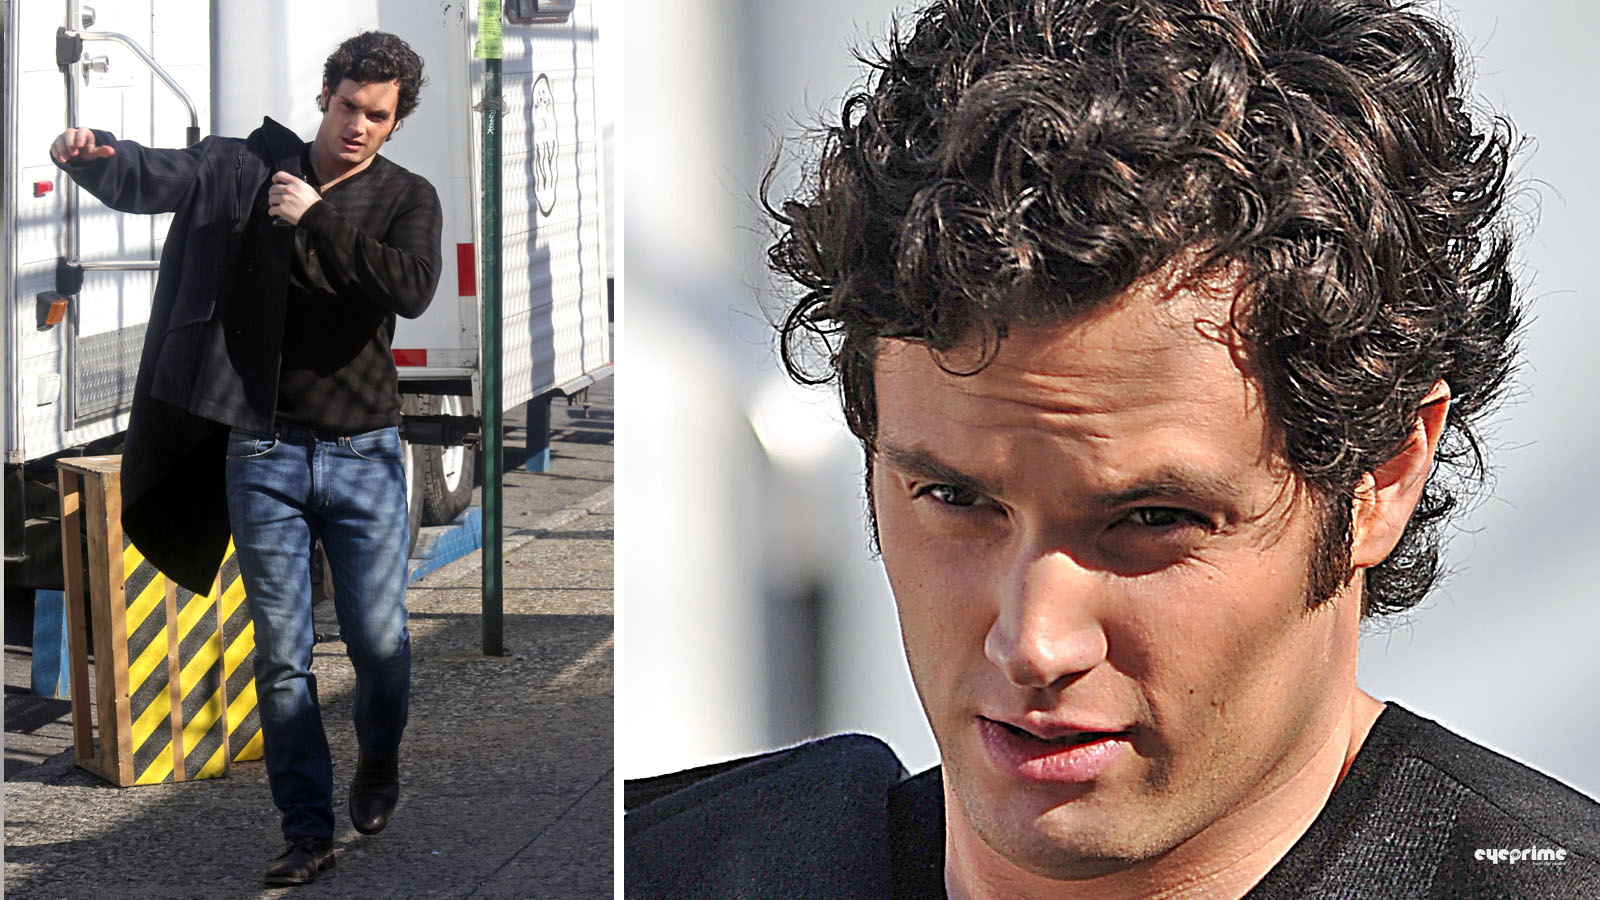 Penn Badgley Is Very Sexy And Hendsome Hollywood Actor